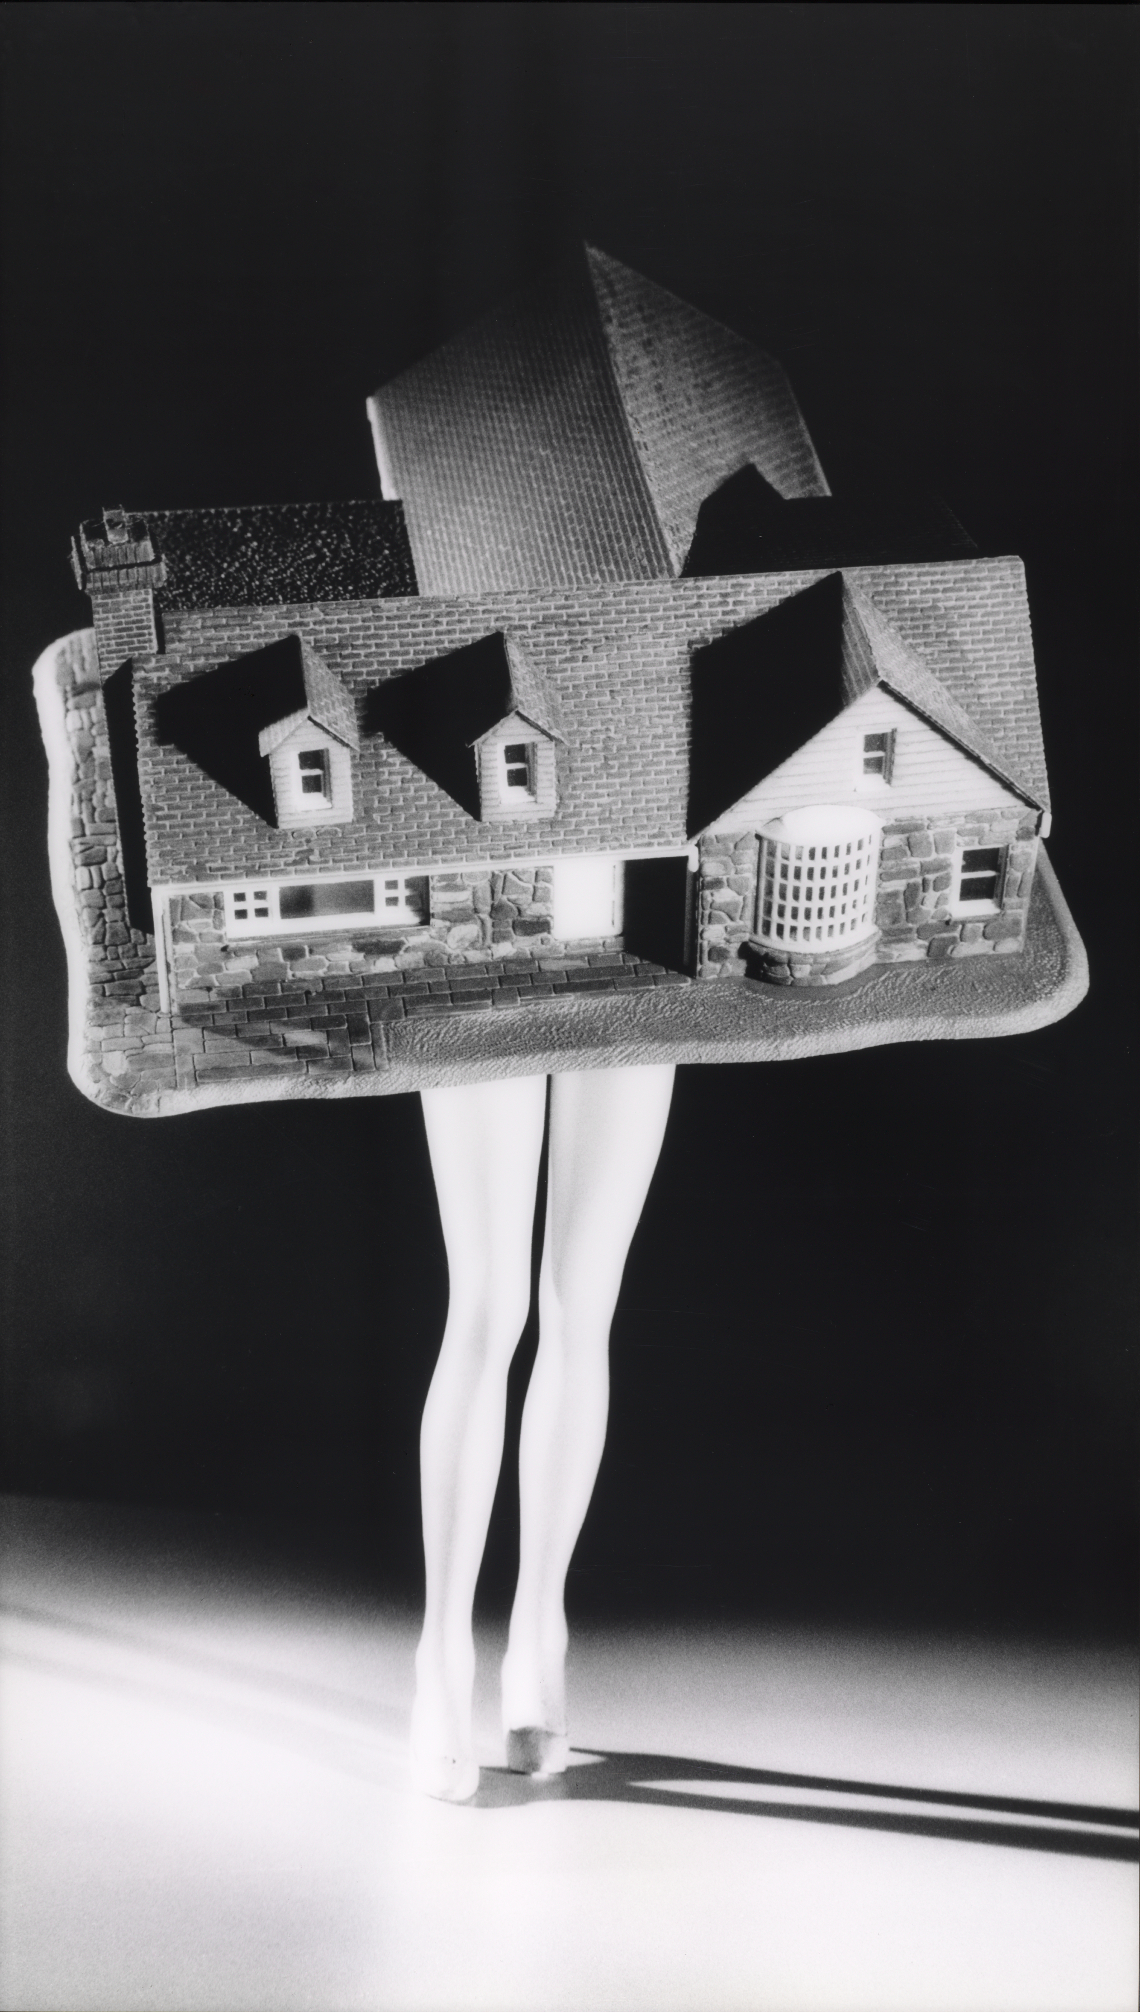 """Laurie Simmons. Walking House. 1989, printed 1997. From the series """"Walking Objects"""". The Baltimore Museum of Art:  Given by the Board of Trustees and Staff in Honor of Arnold L. Lehman, Director, 1979-1997. BMA 1997.130. © Laurie Simmons, Courtesy of the artist and Salon 94, New York"""